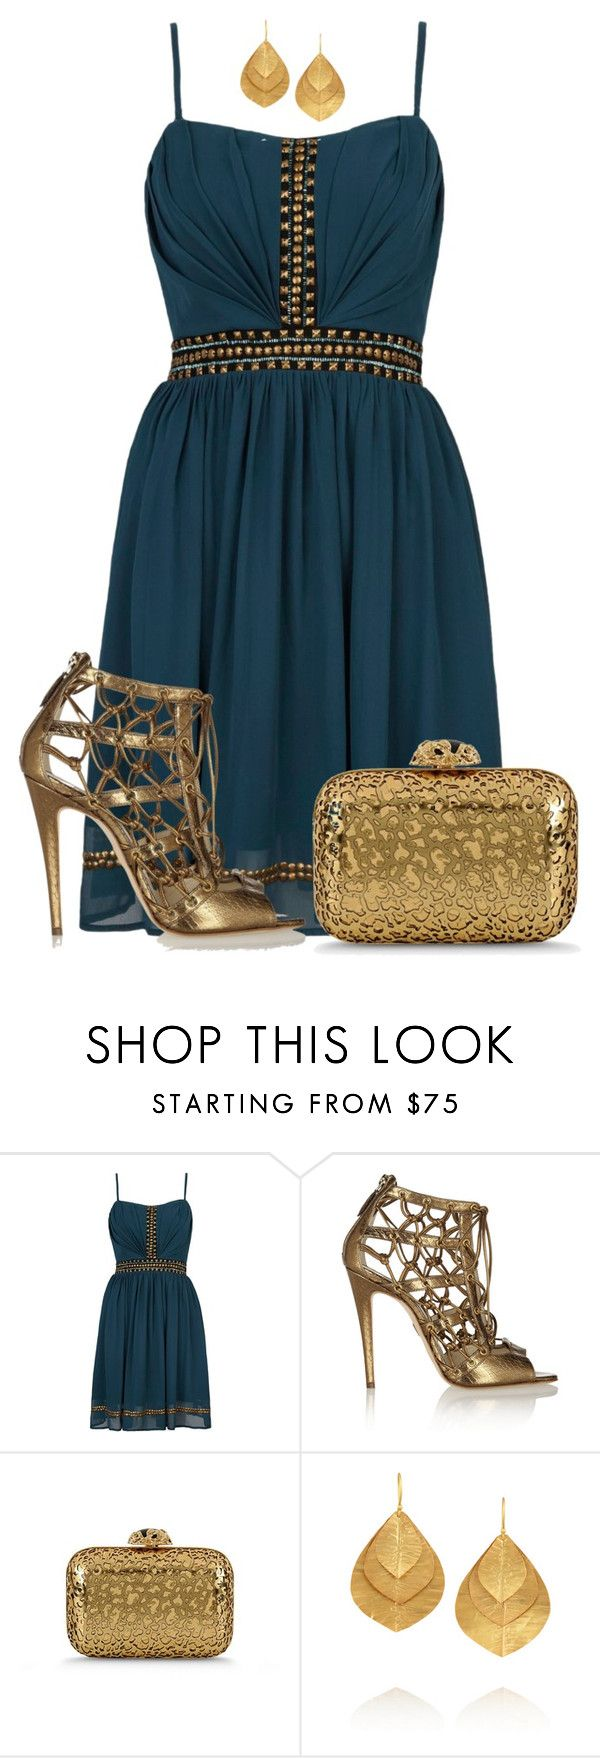 """Teal Studded Dress"" by katiediab ❤ liked on Polyvore featuring Yumi, Brian Atwood, Sergio Rossi, Kevia, outfit, gold, Studs, dress and teal"